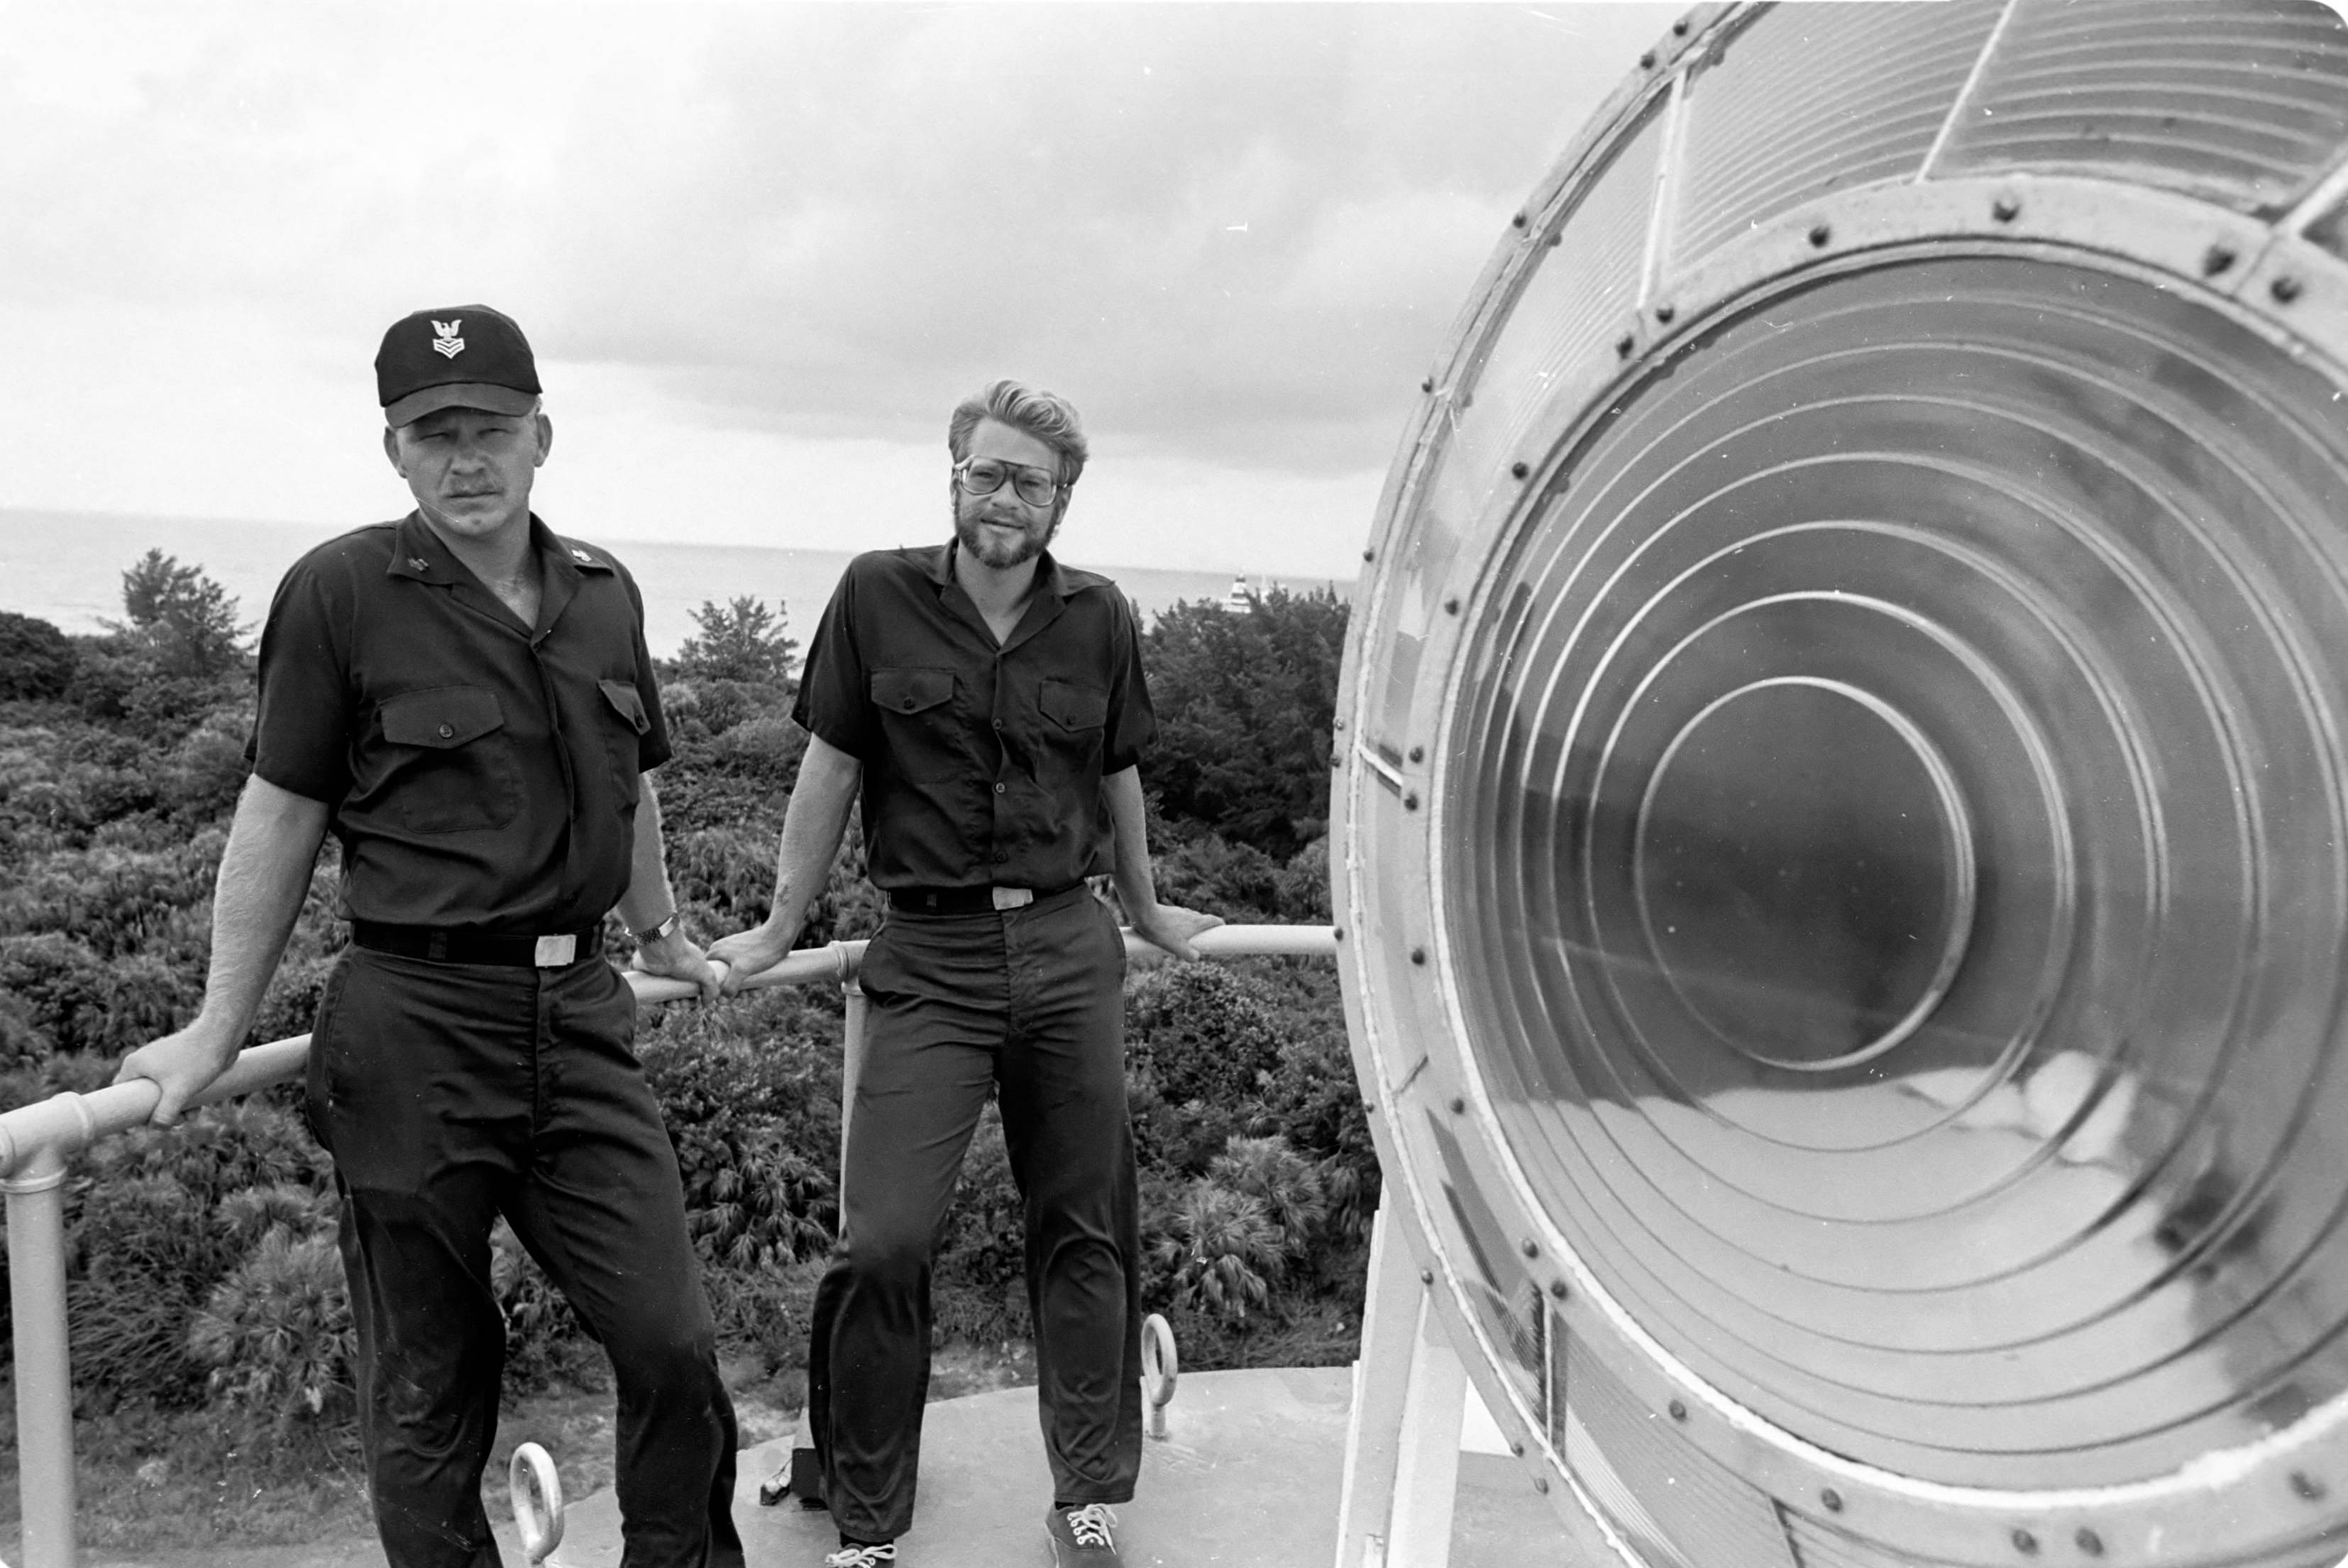 The lighthouse keepers of Egmont Key pose with the light lens (1980)